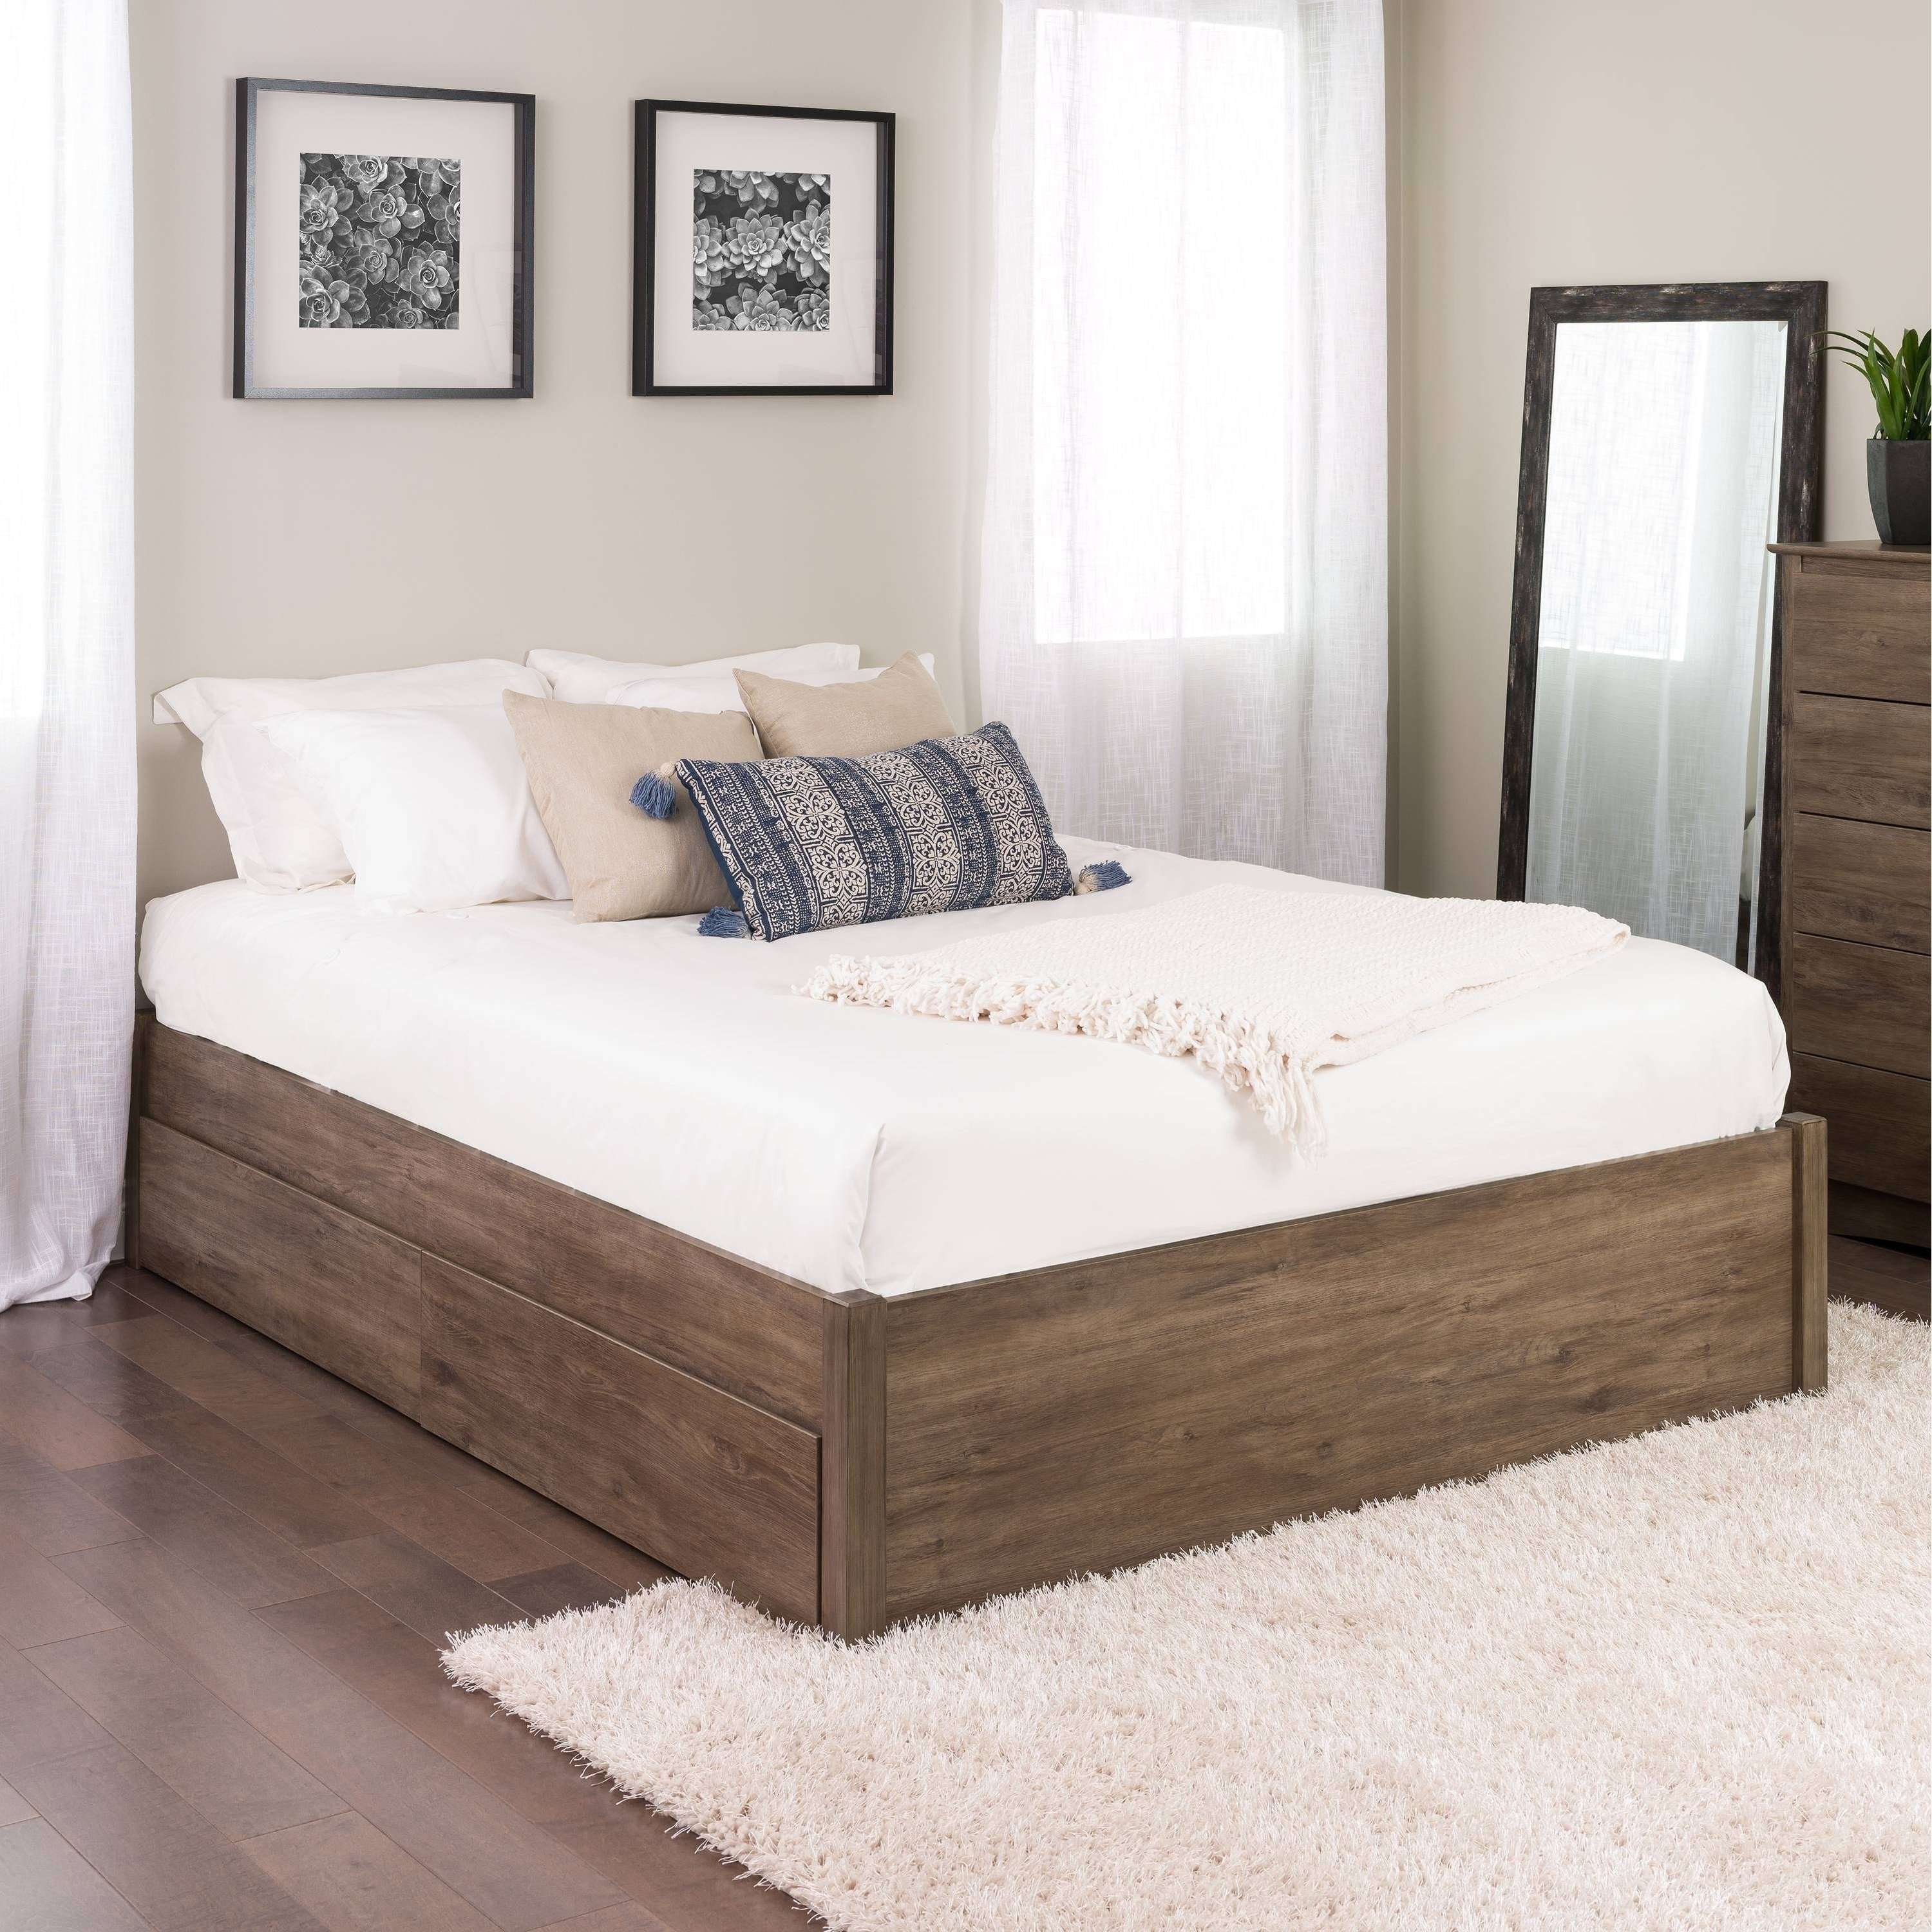 Rooms to Go King Bedroom Set Inspirational Prepac Queen Select 4 Post Platform Bed with Optional Drawers